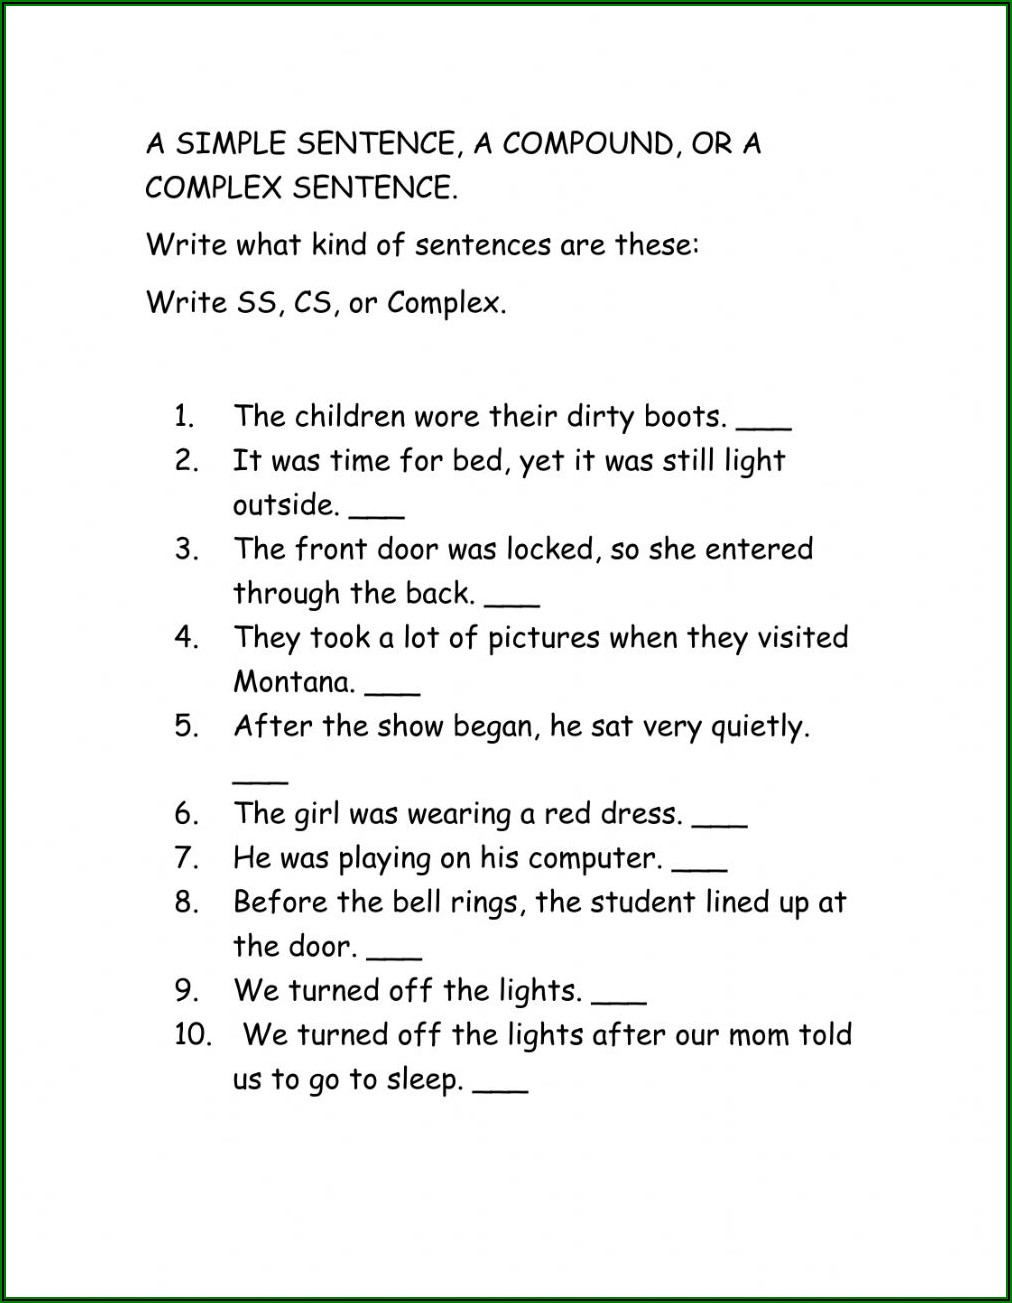 Worksheet On Simple Compound And Complex Sentences With Answers